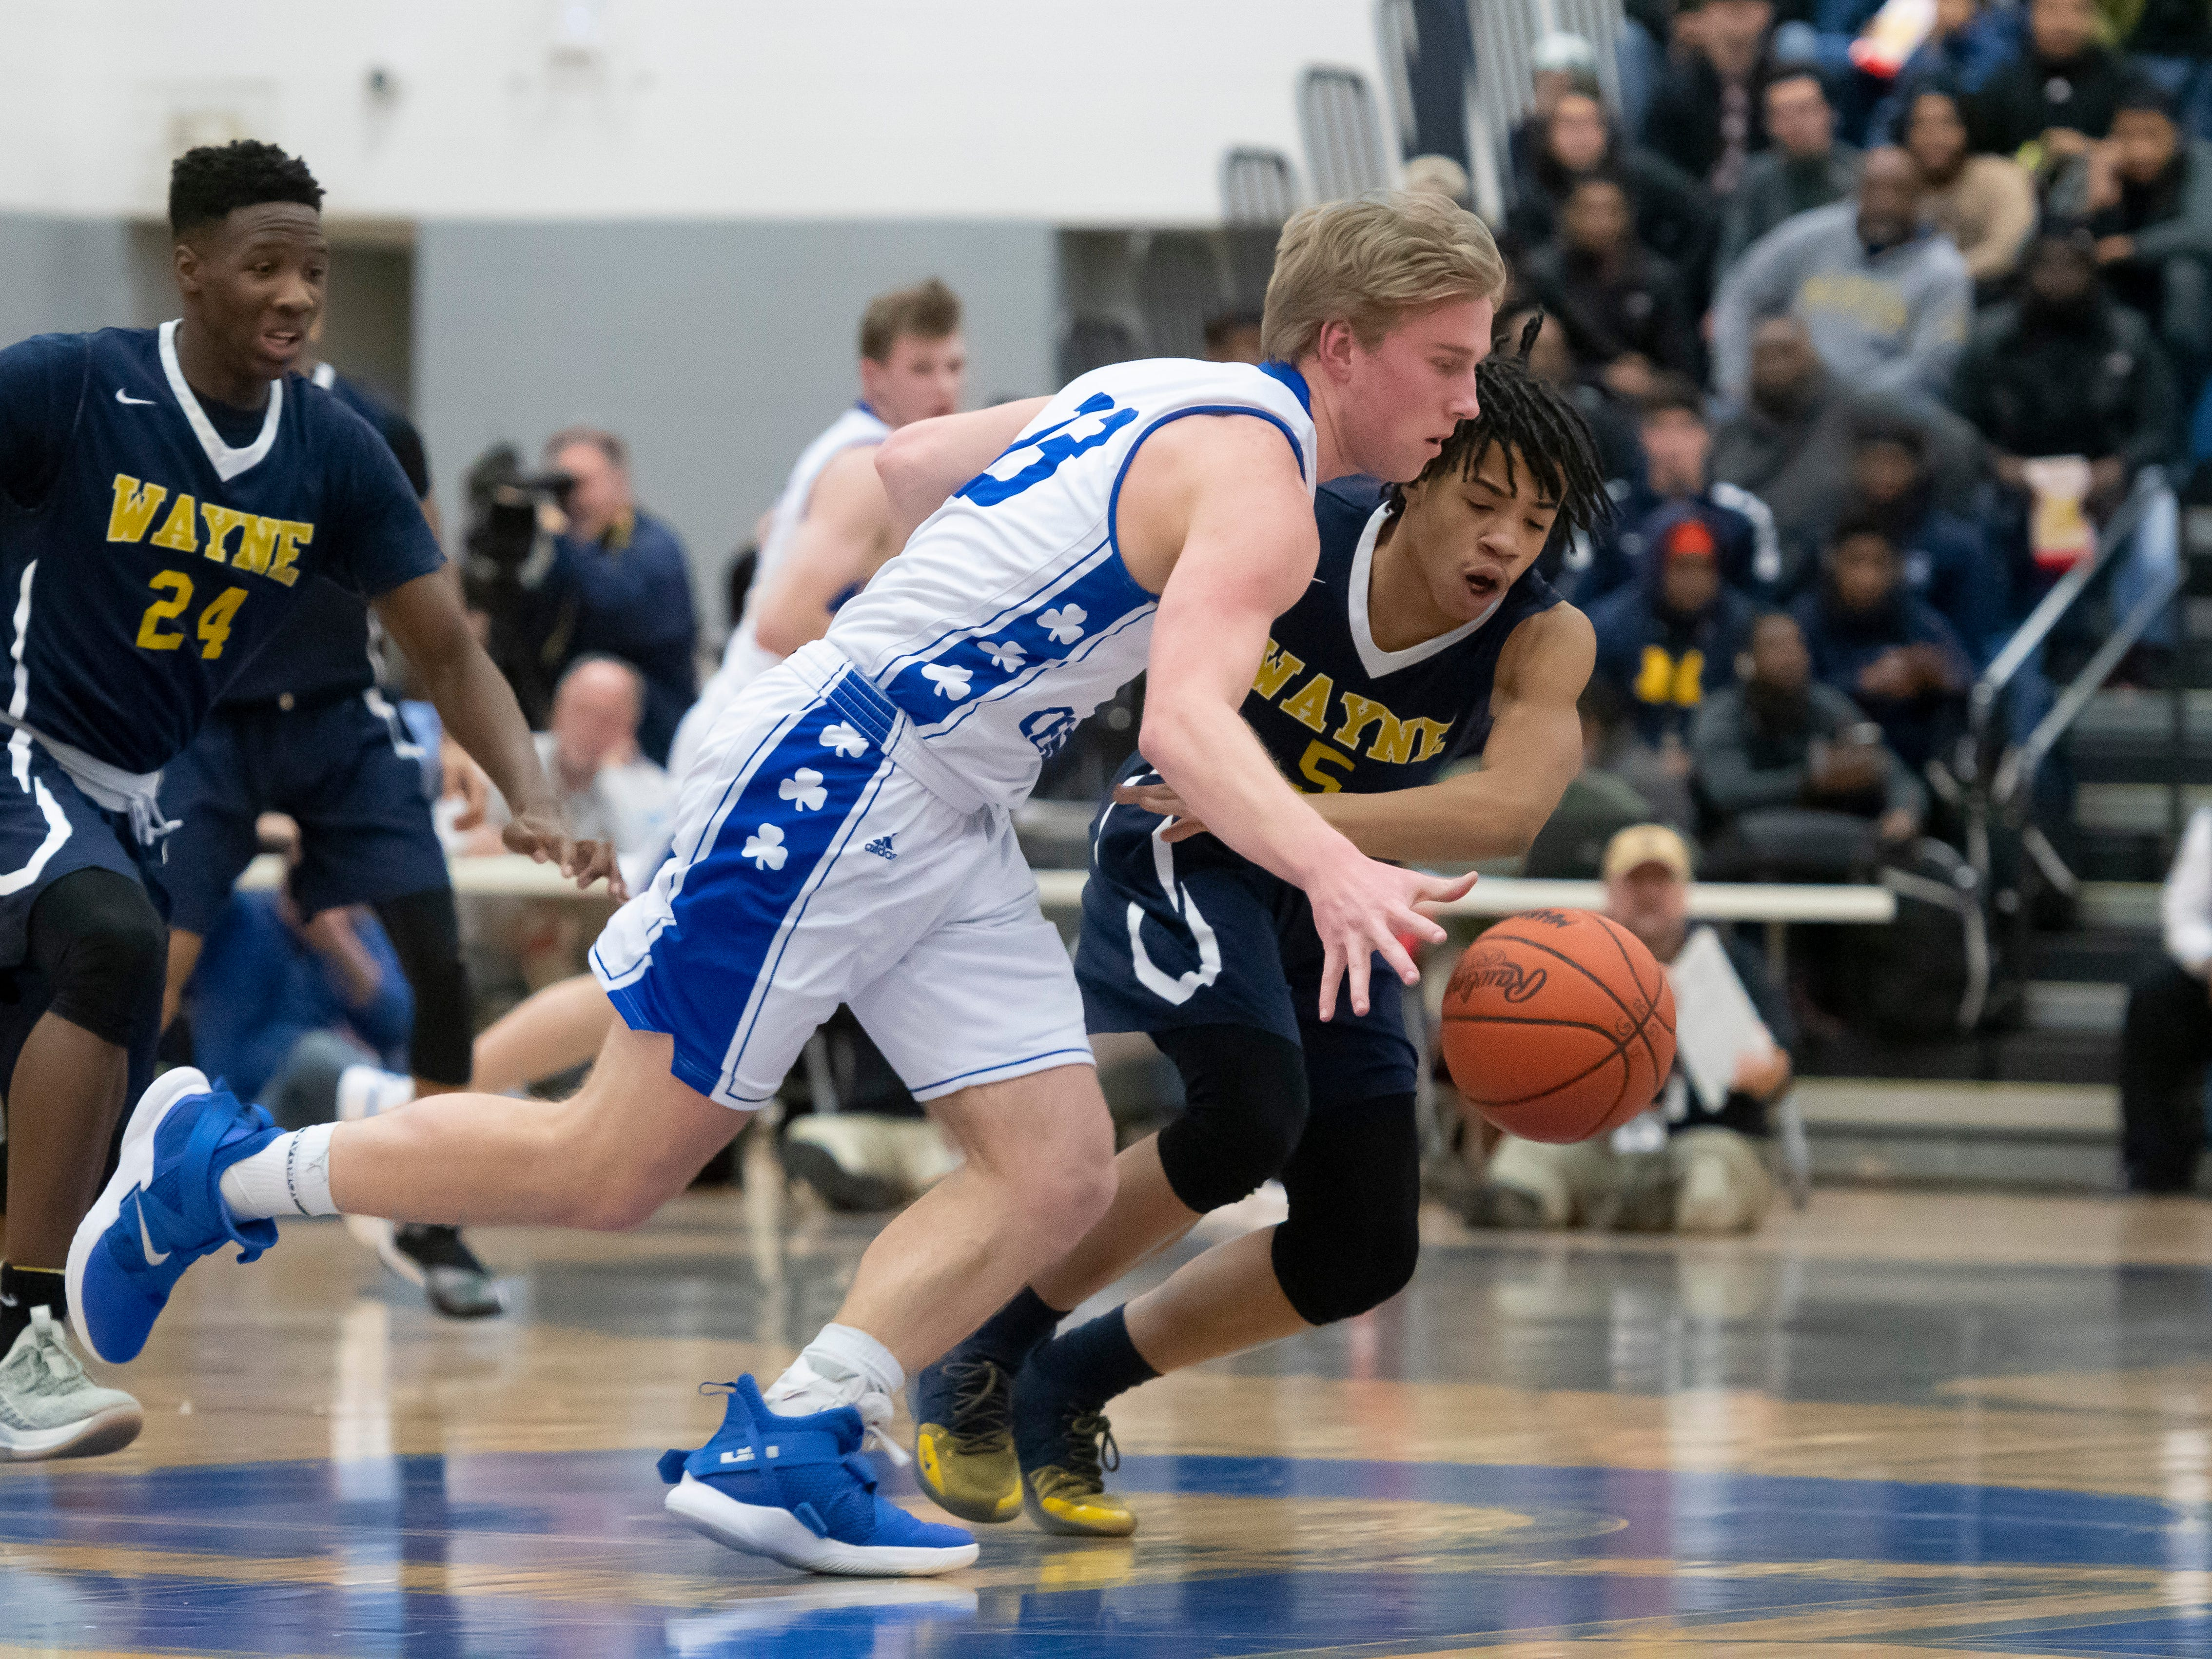 Detroit Catholic Central's Jacob Woebkenberg, left, tries to drive around Wayne Memorial guard Kenneth Bowie in the first half.